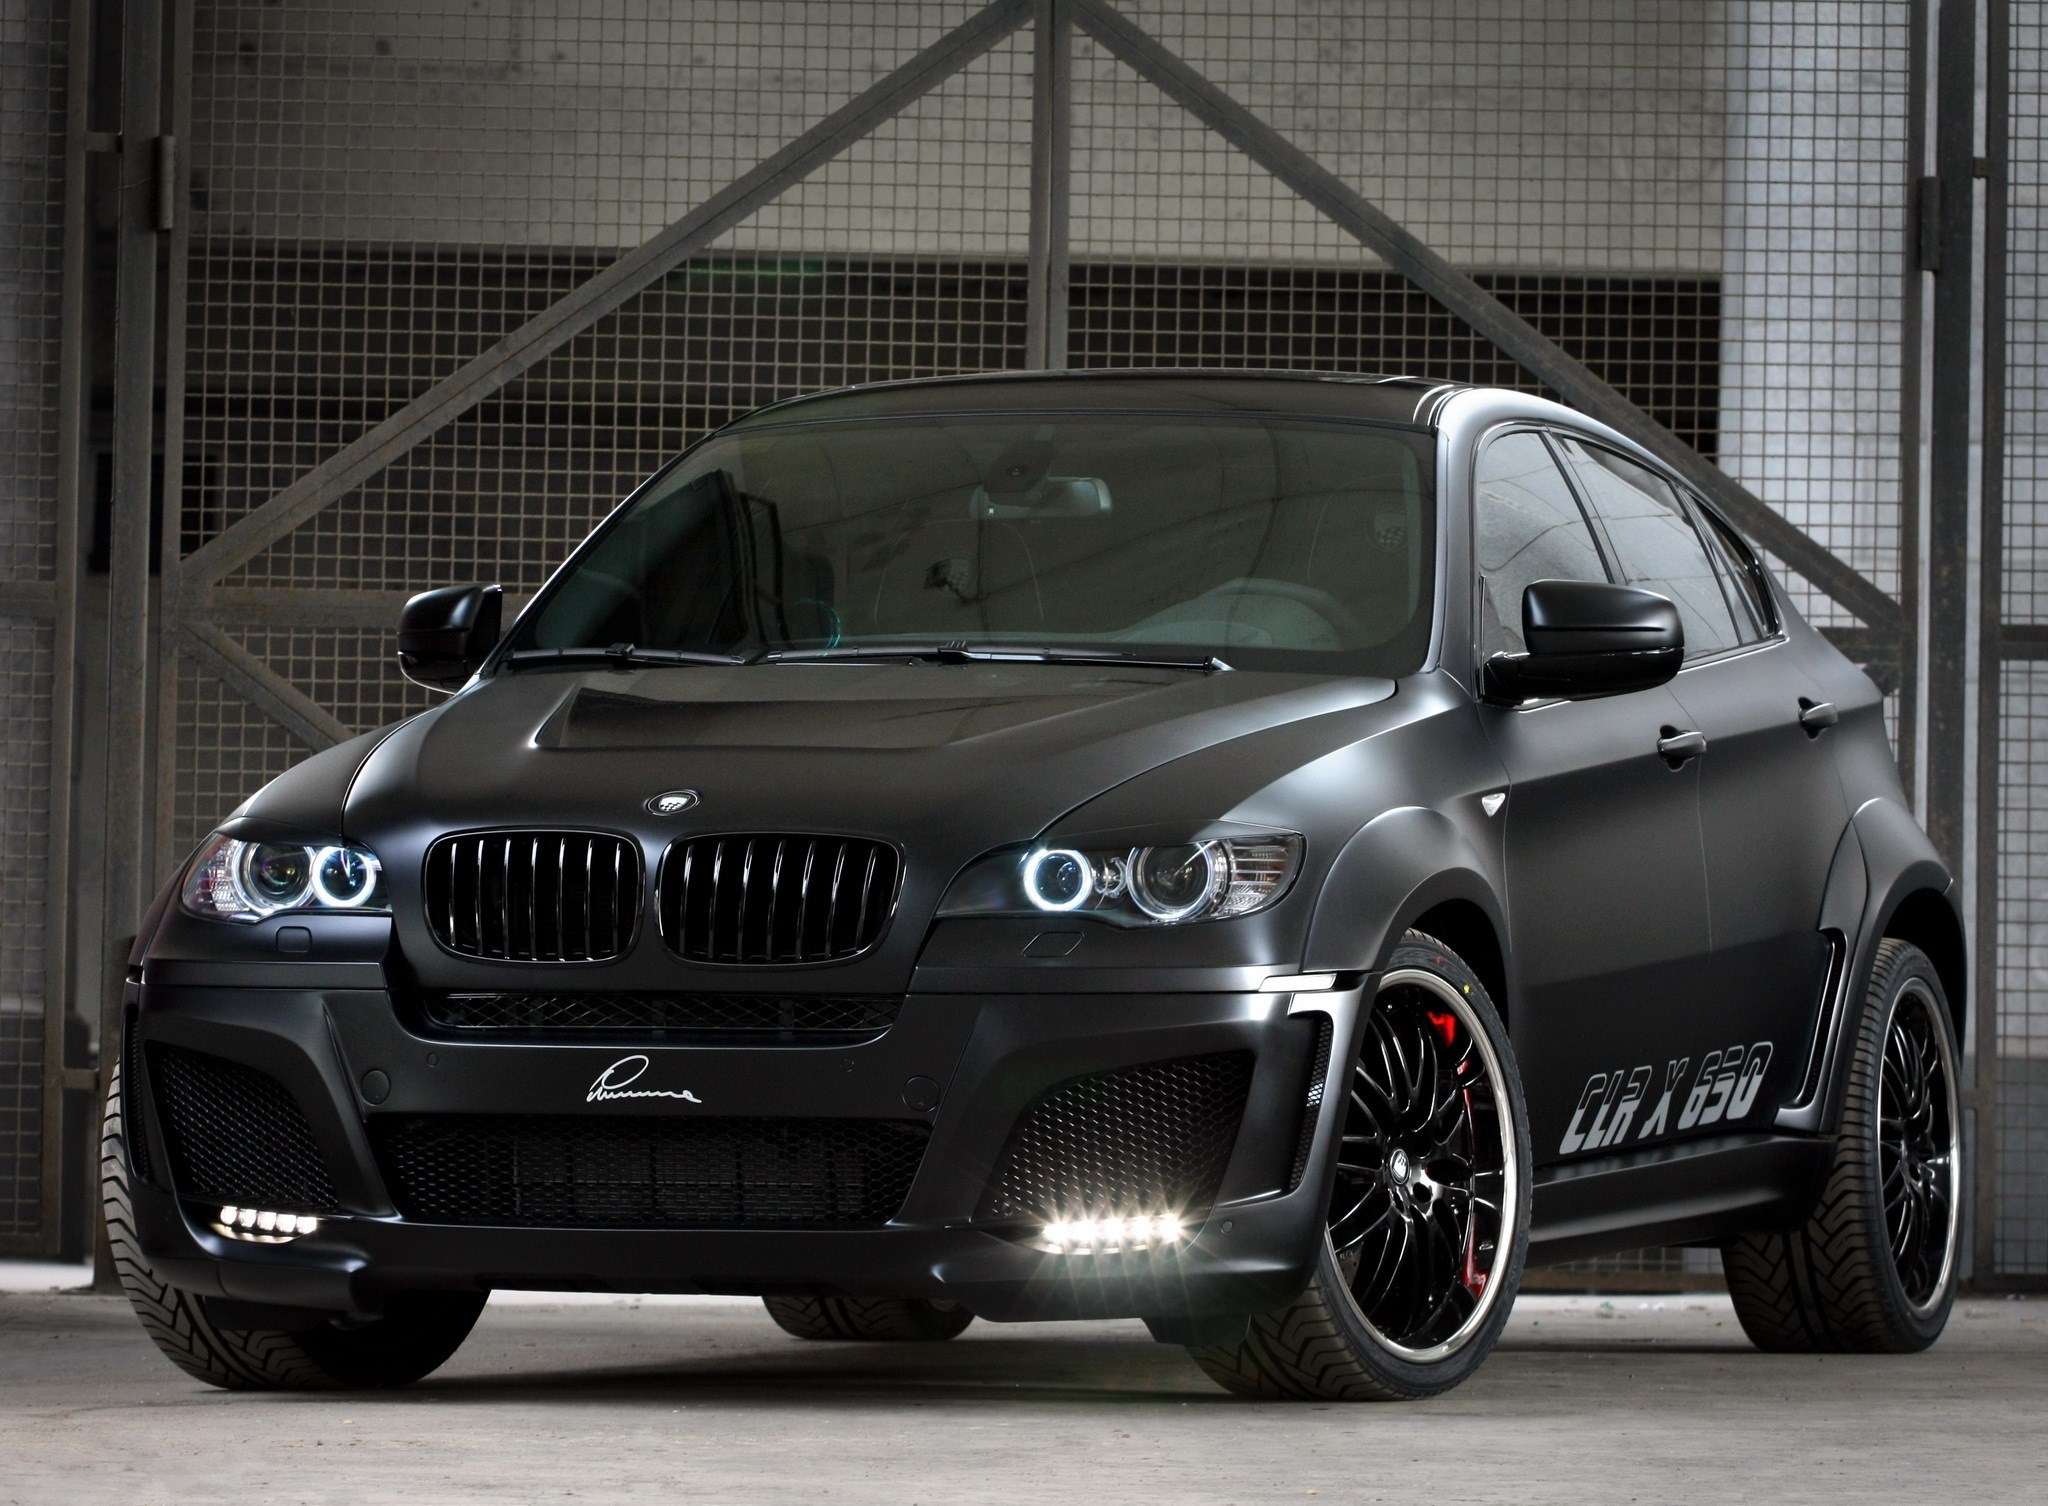 BMW X6 Tuning Pictures